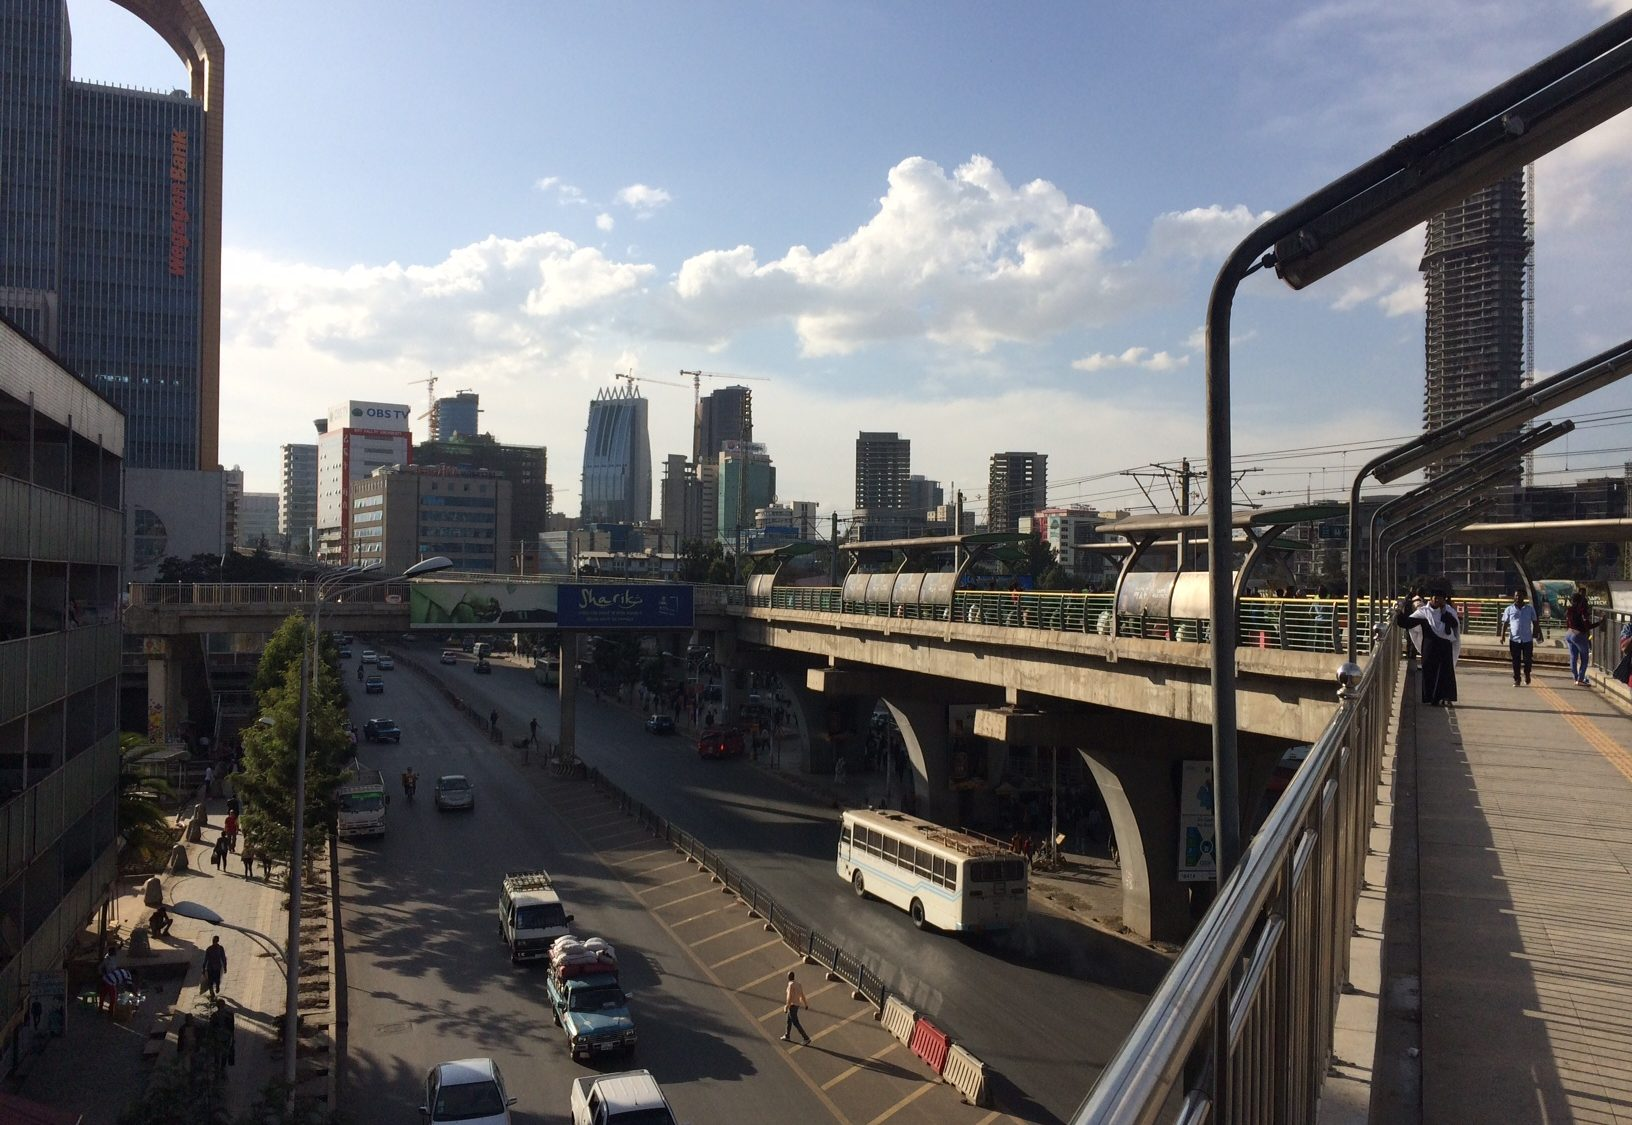 Downtown Addis Abeba